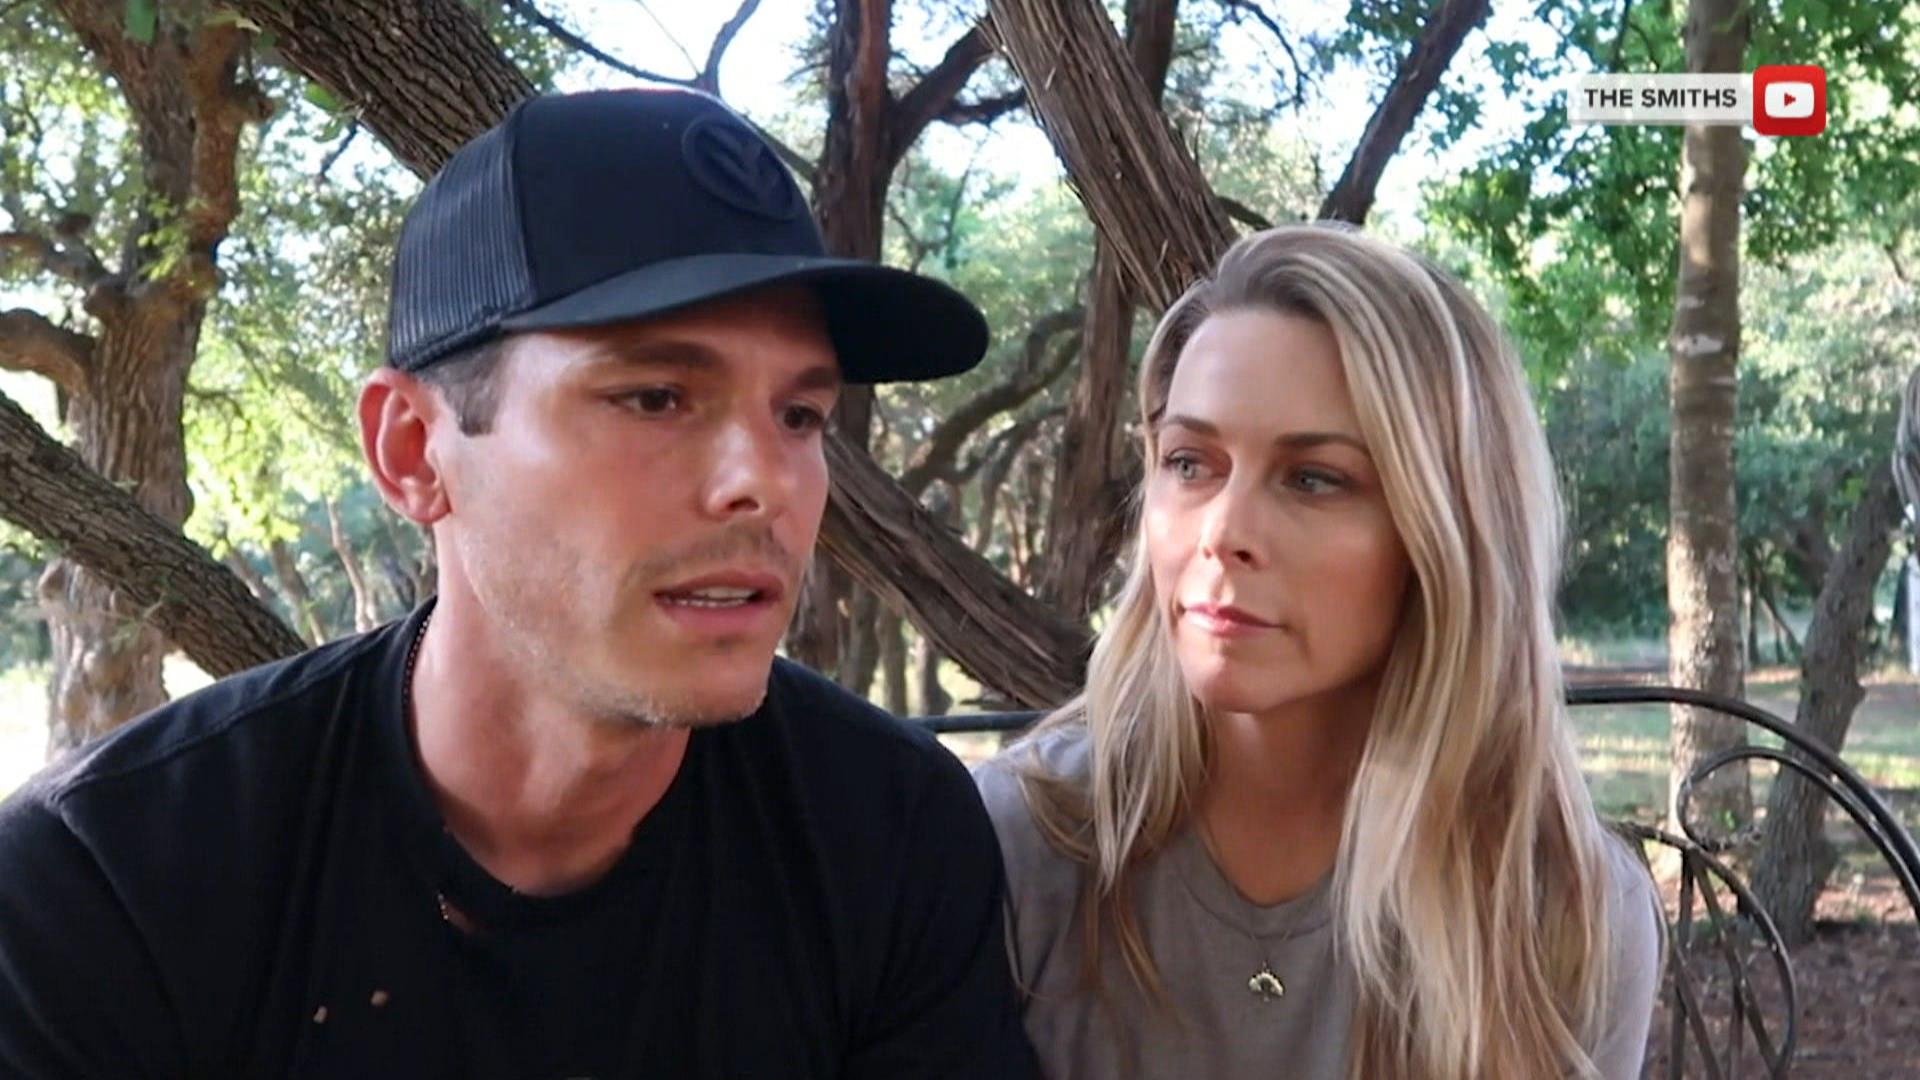 Granger Smith and wife make donation in honor of son who drowned